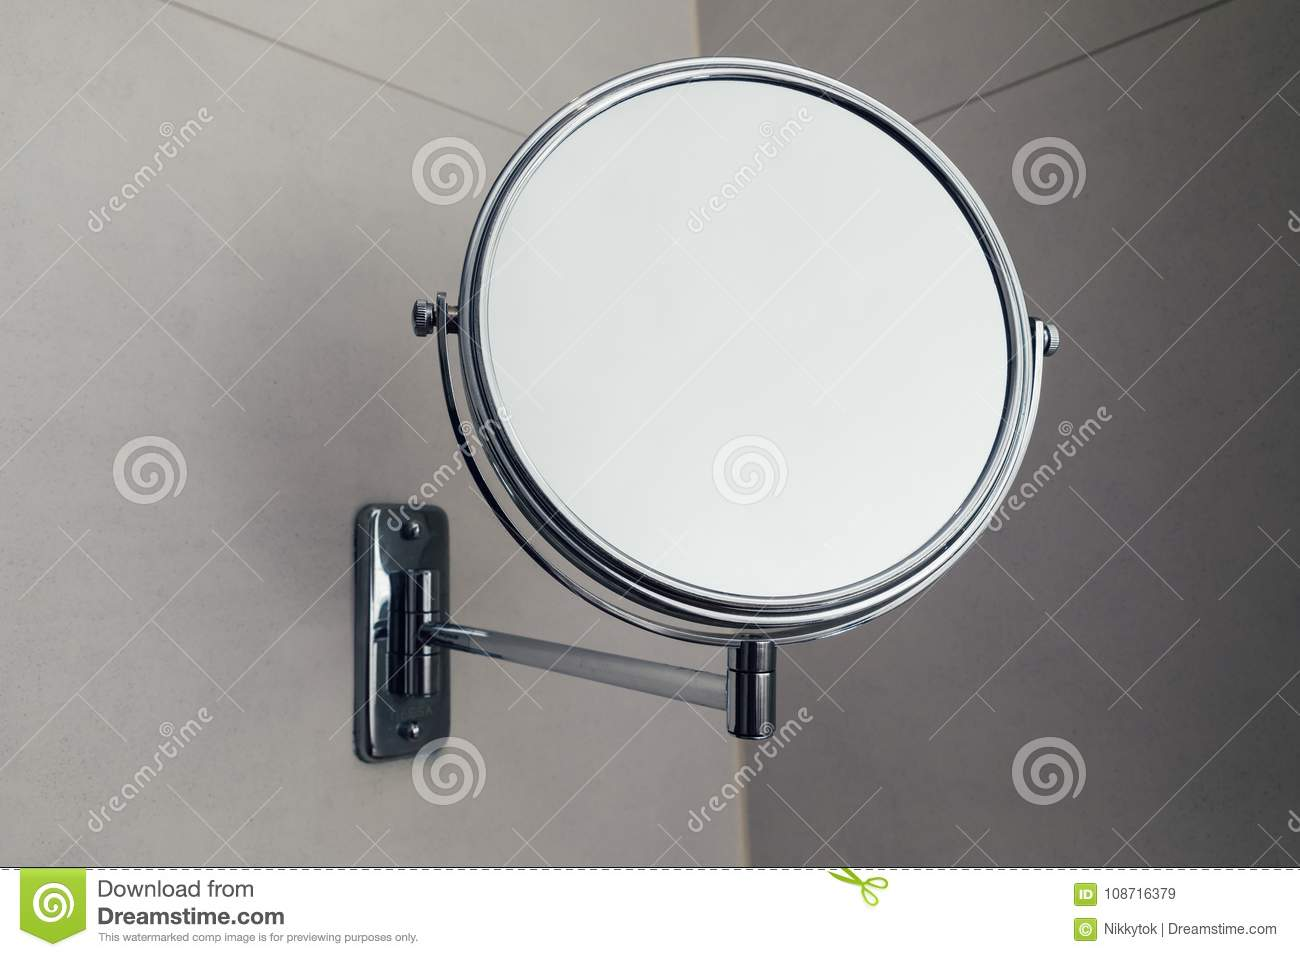 Vanity Round Mirror In Bathroom, Closeup View Stock Image - Image of ...